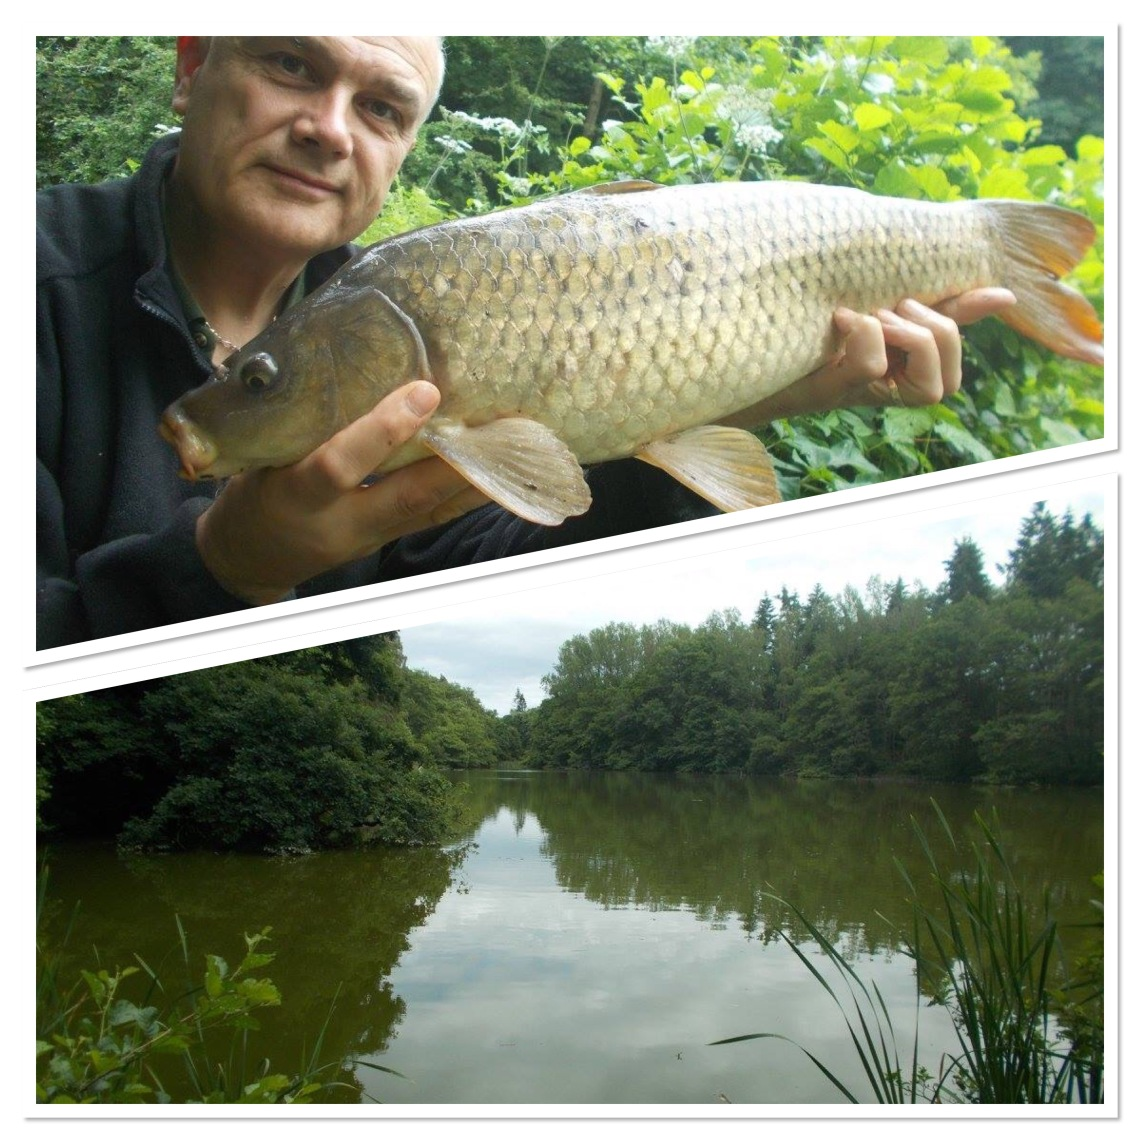 I haven't been carp fishing for a while - I enjoyed it